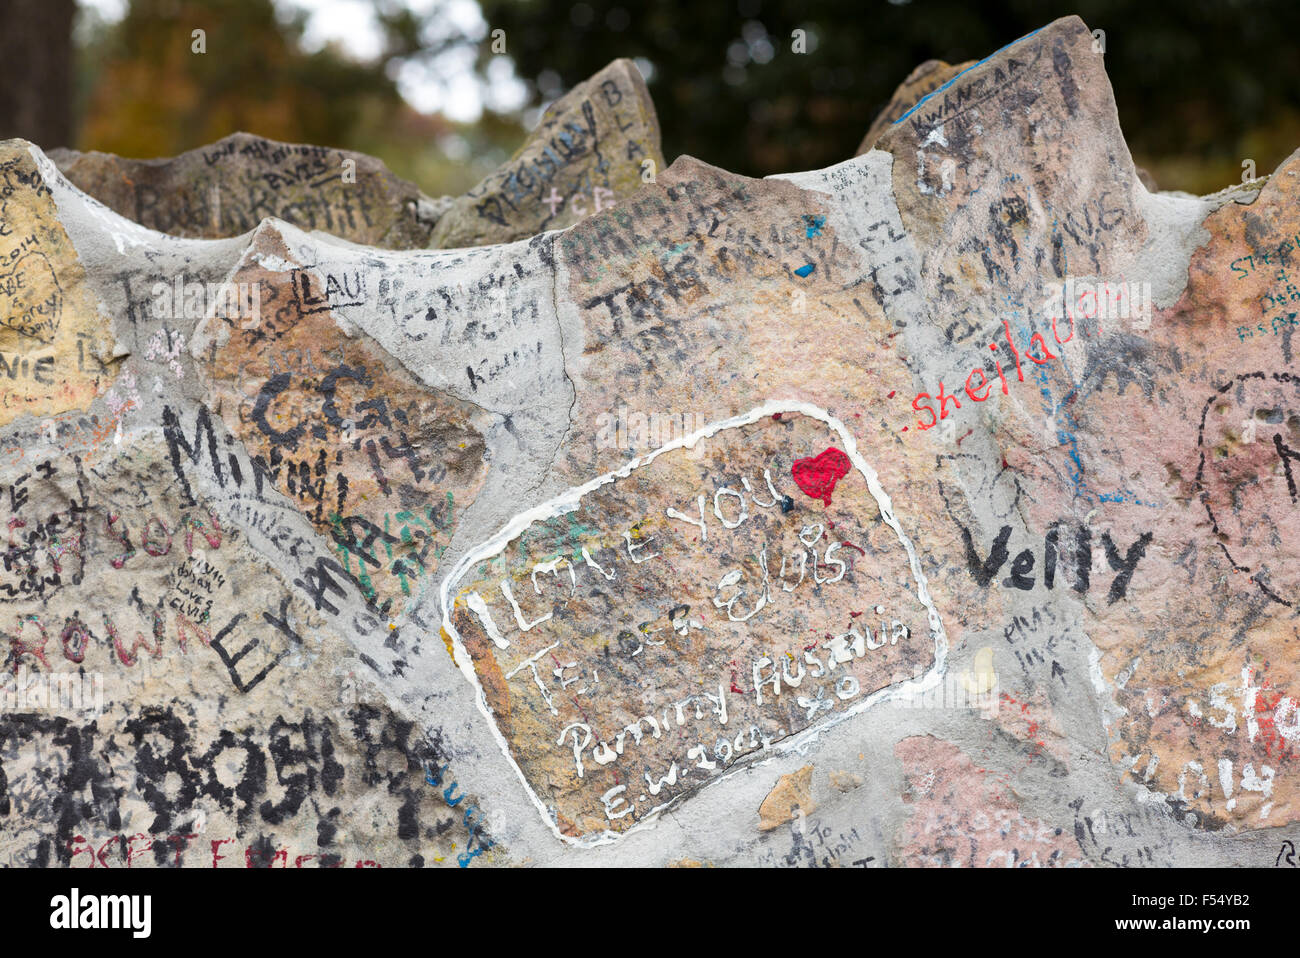 Love messages from adoring fans, graffiti on wall at Graceland, home of rock and roll star Elvis Presley, Memphis, - Stock Image